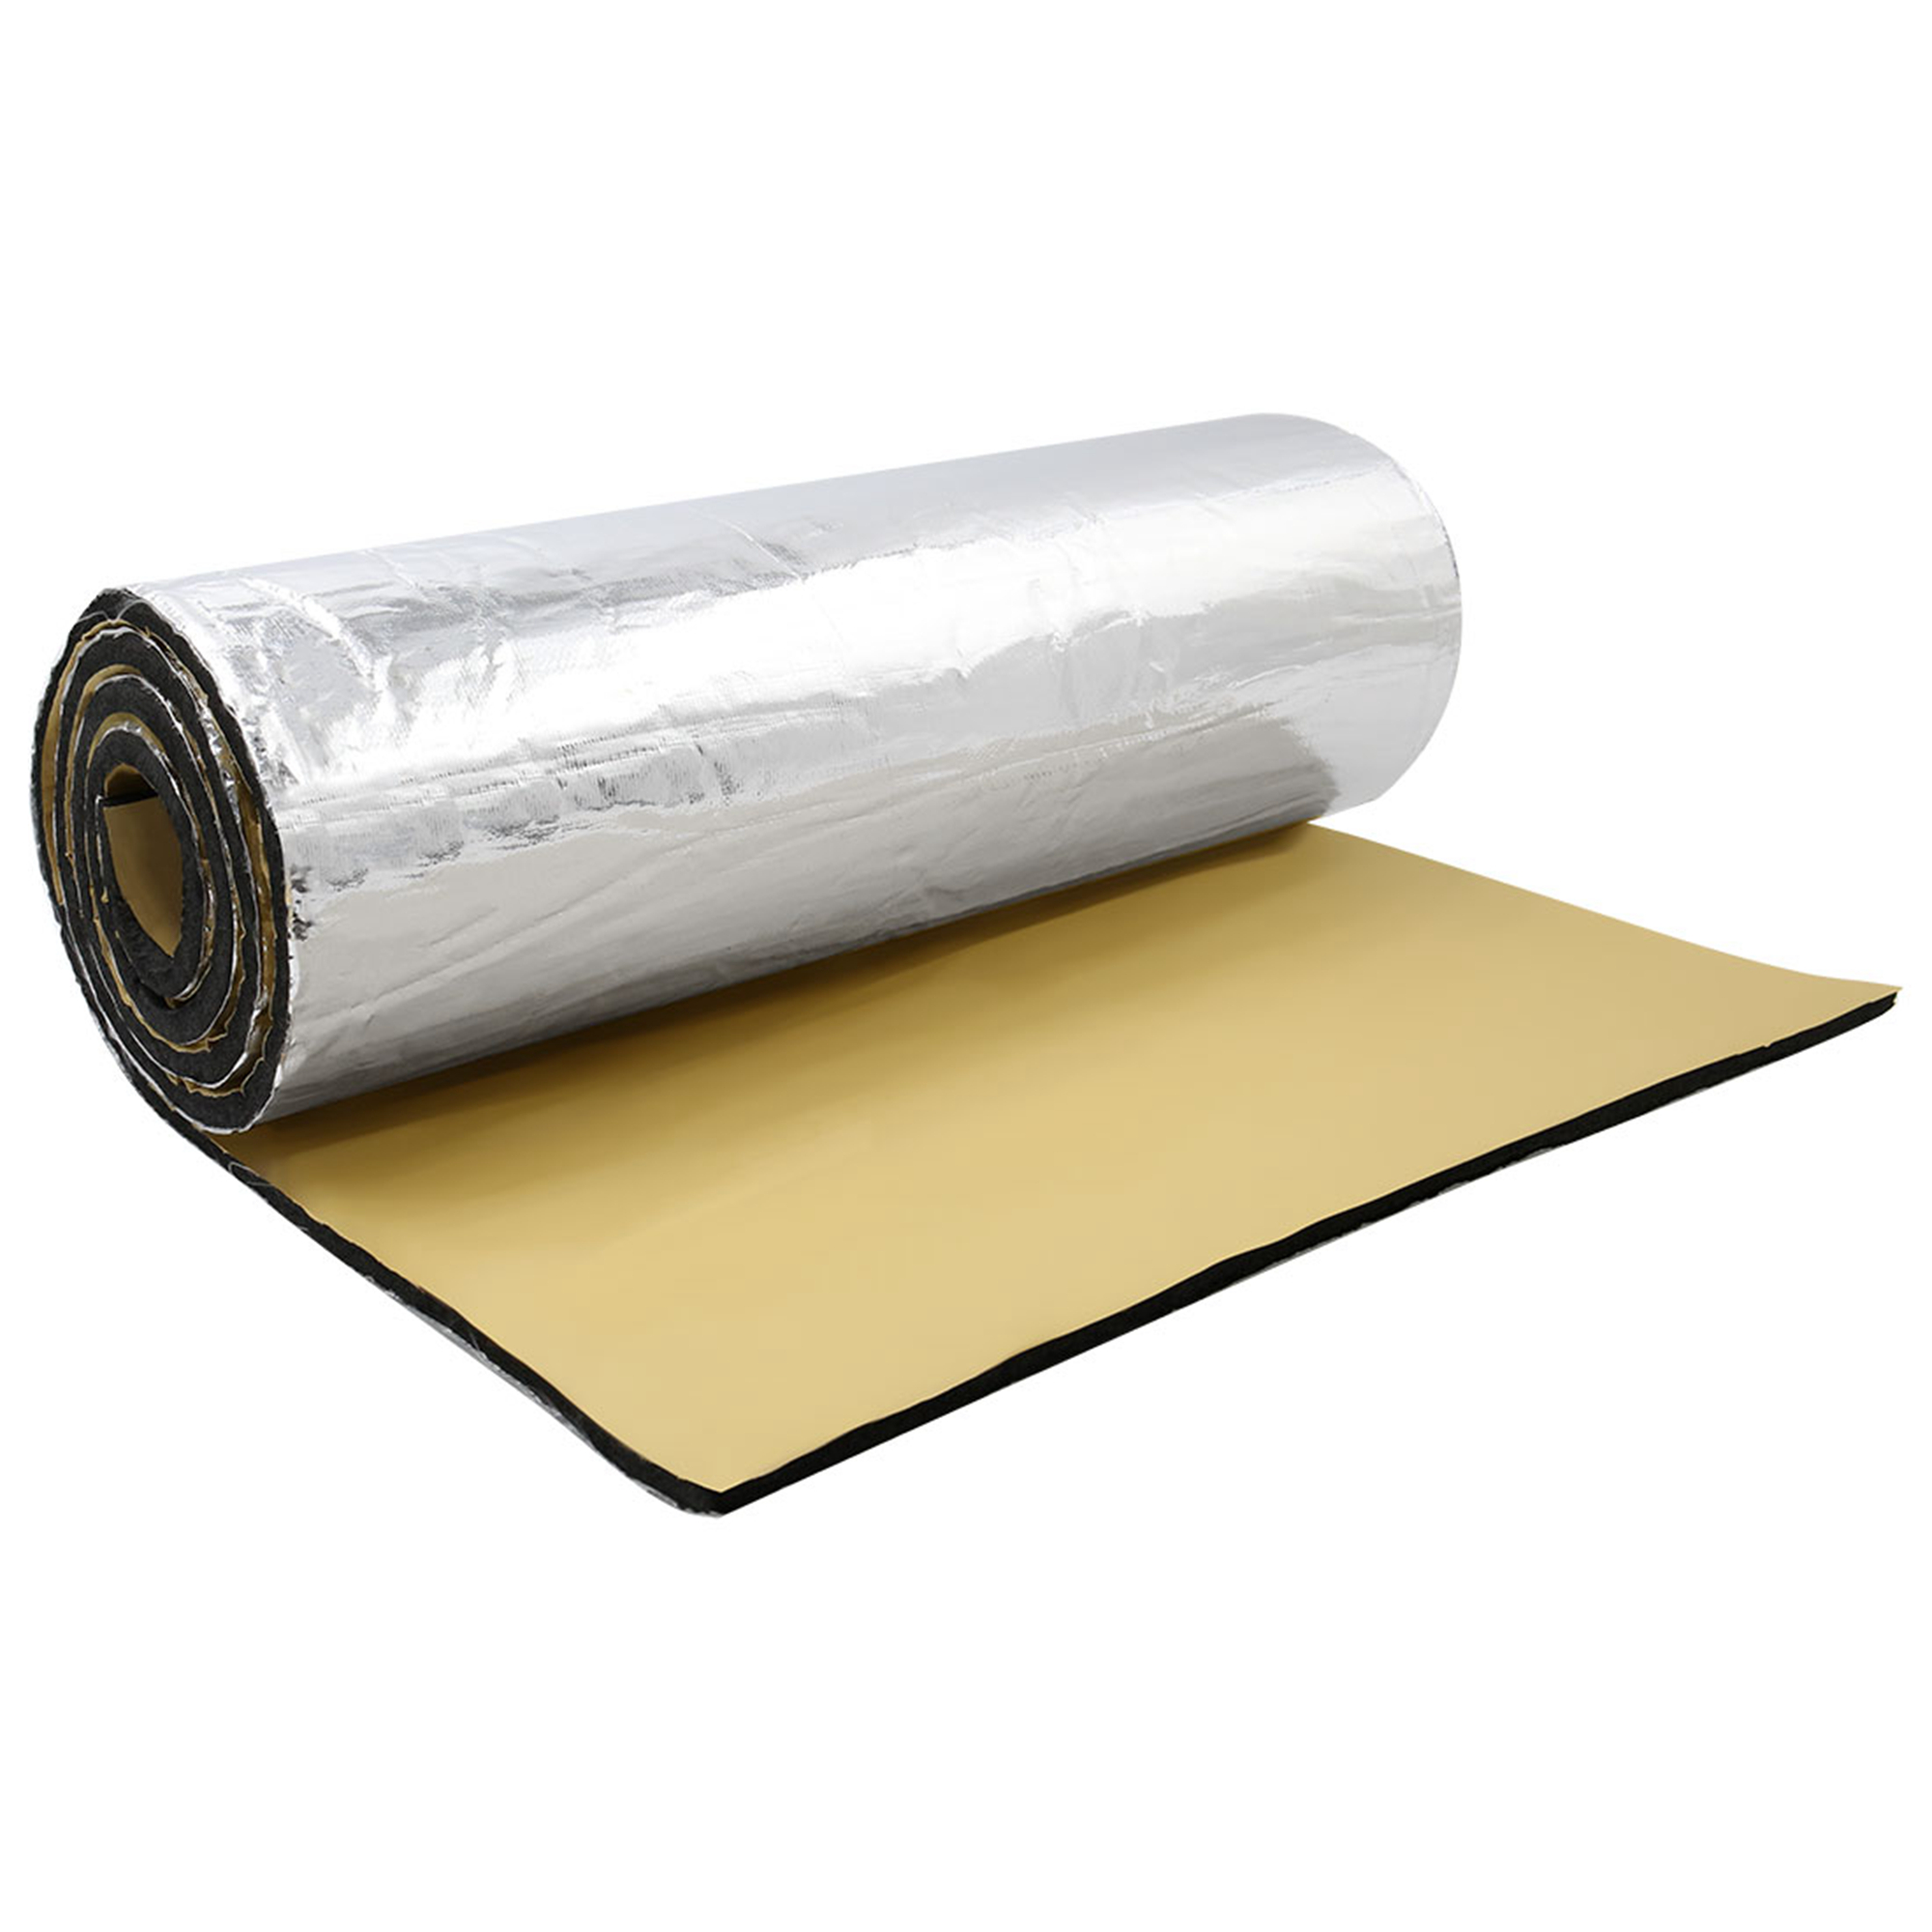 "197mil 10.76sqft Car Acoustic Barrier Heat Sound Absorption Deadener Mat 40""x40"""